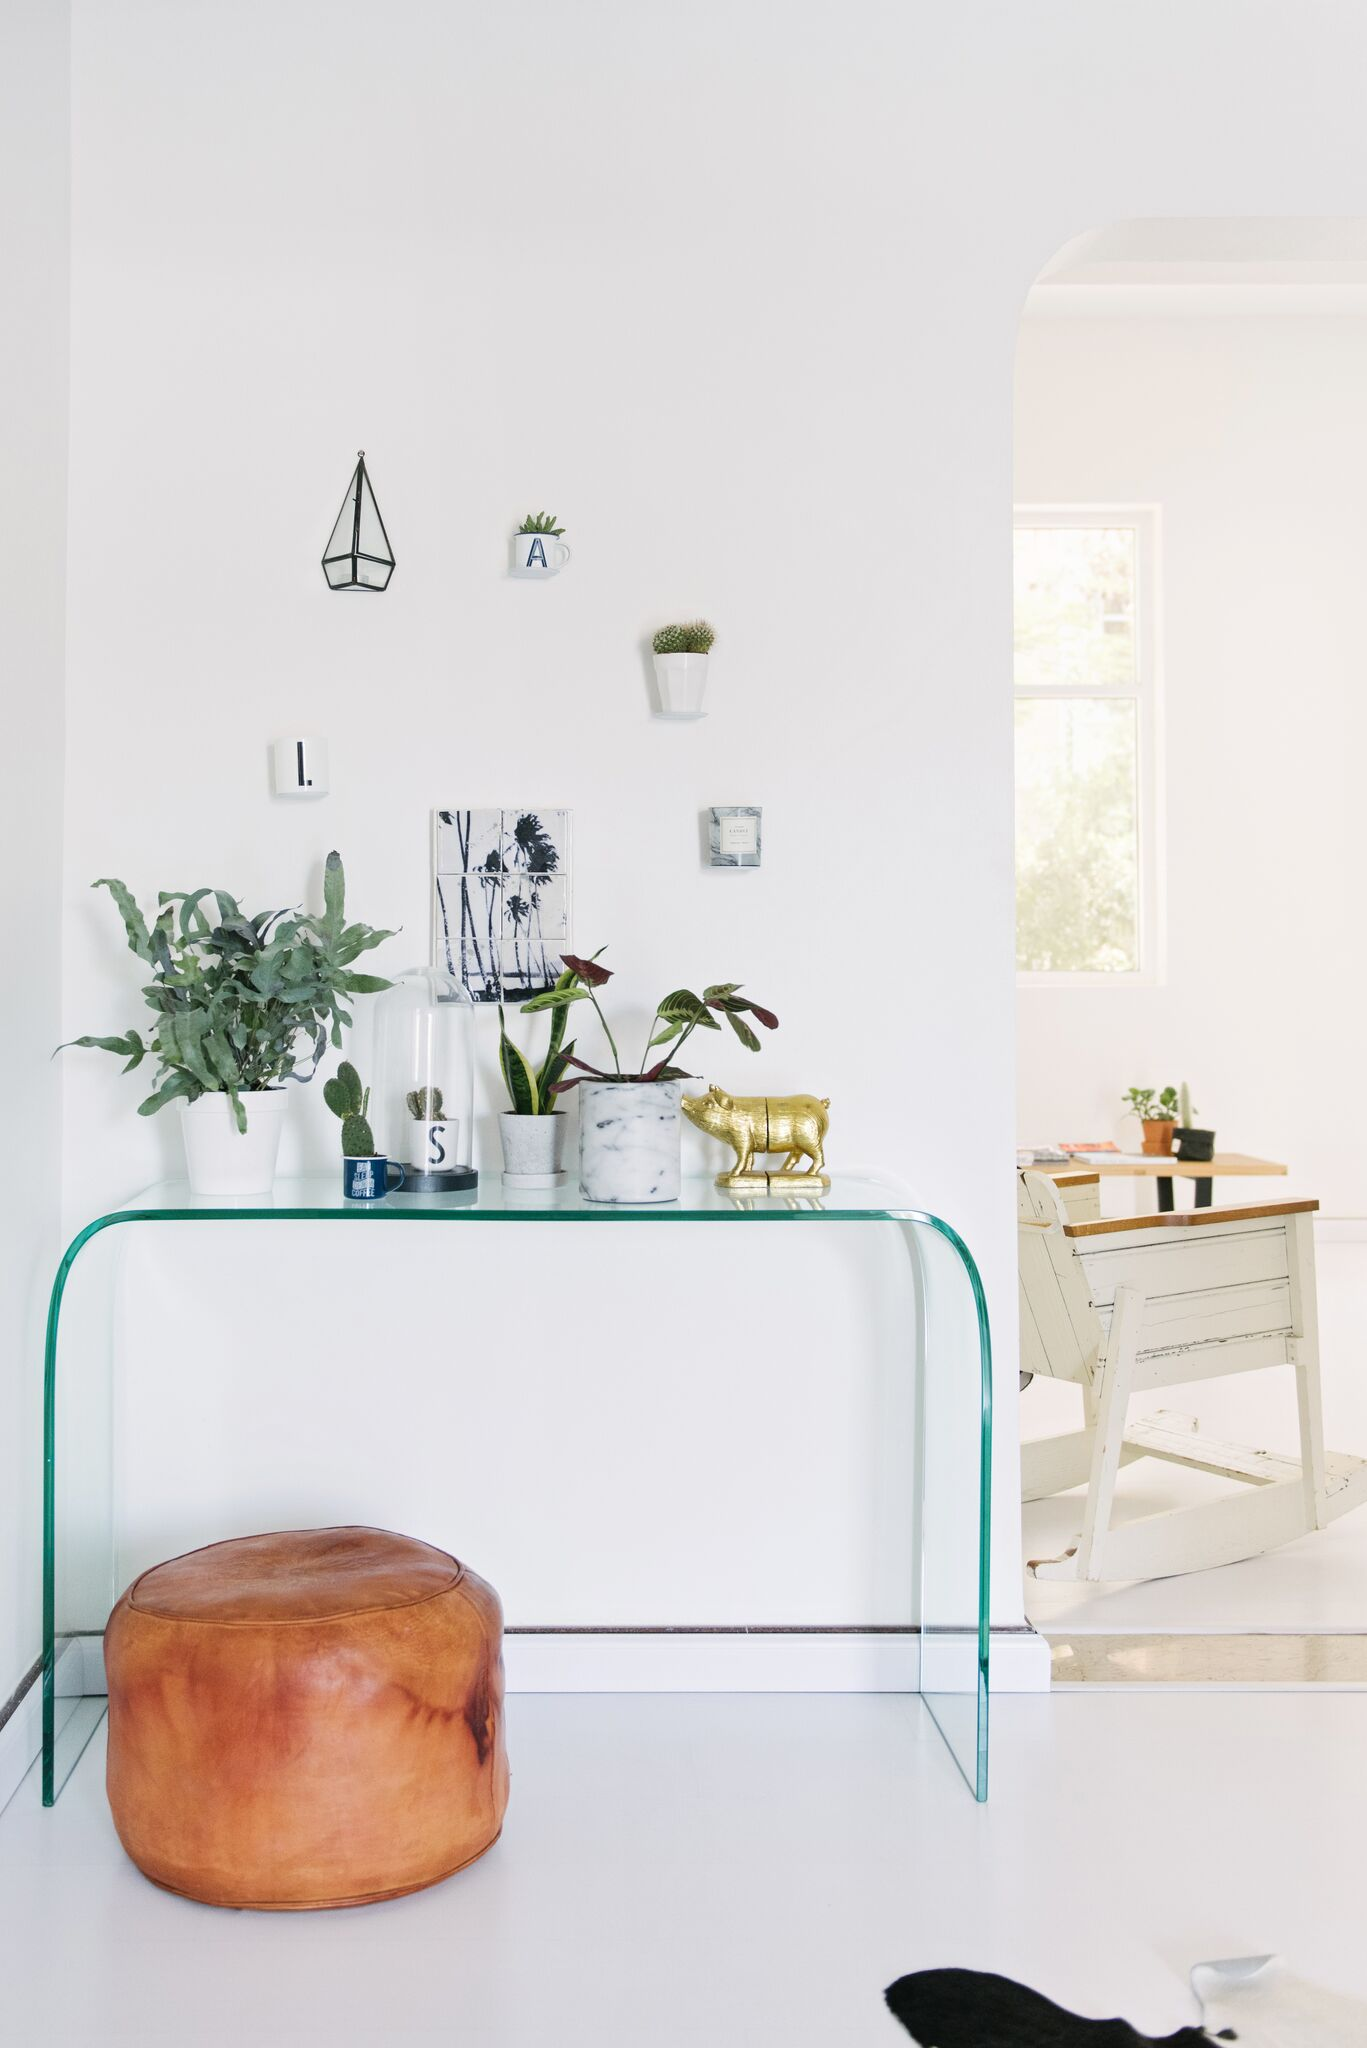 Styled ghost table against white wall